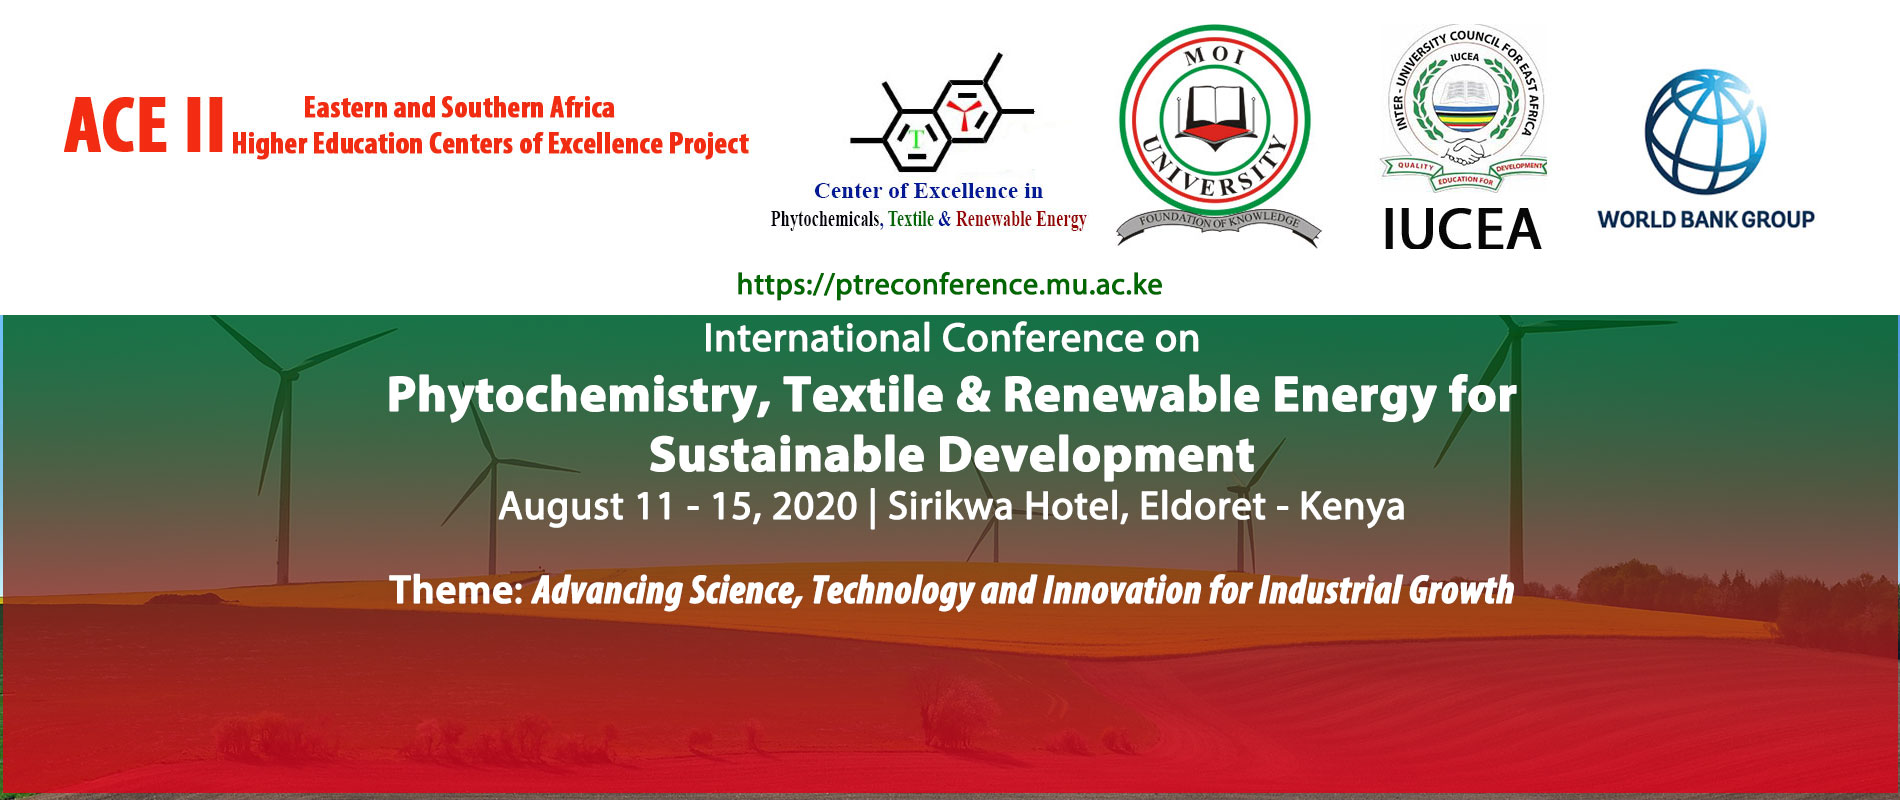 international conference on phytochemistry, textile & renewable energy website banner